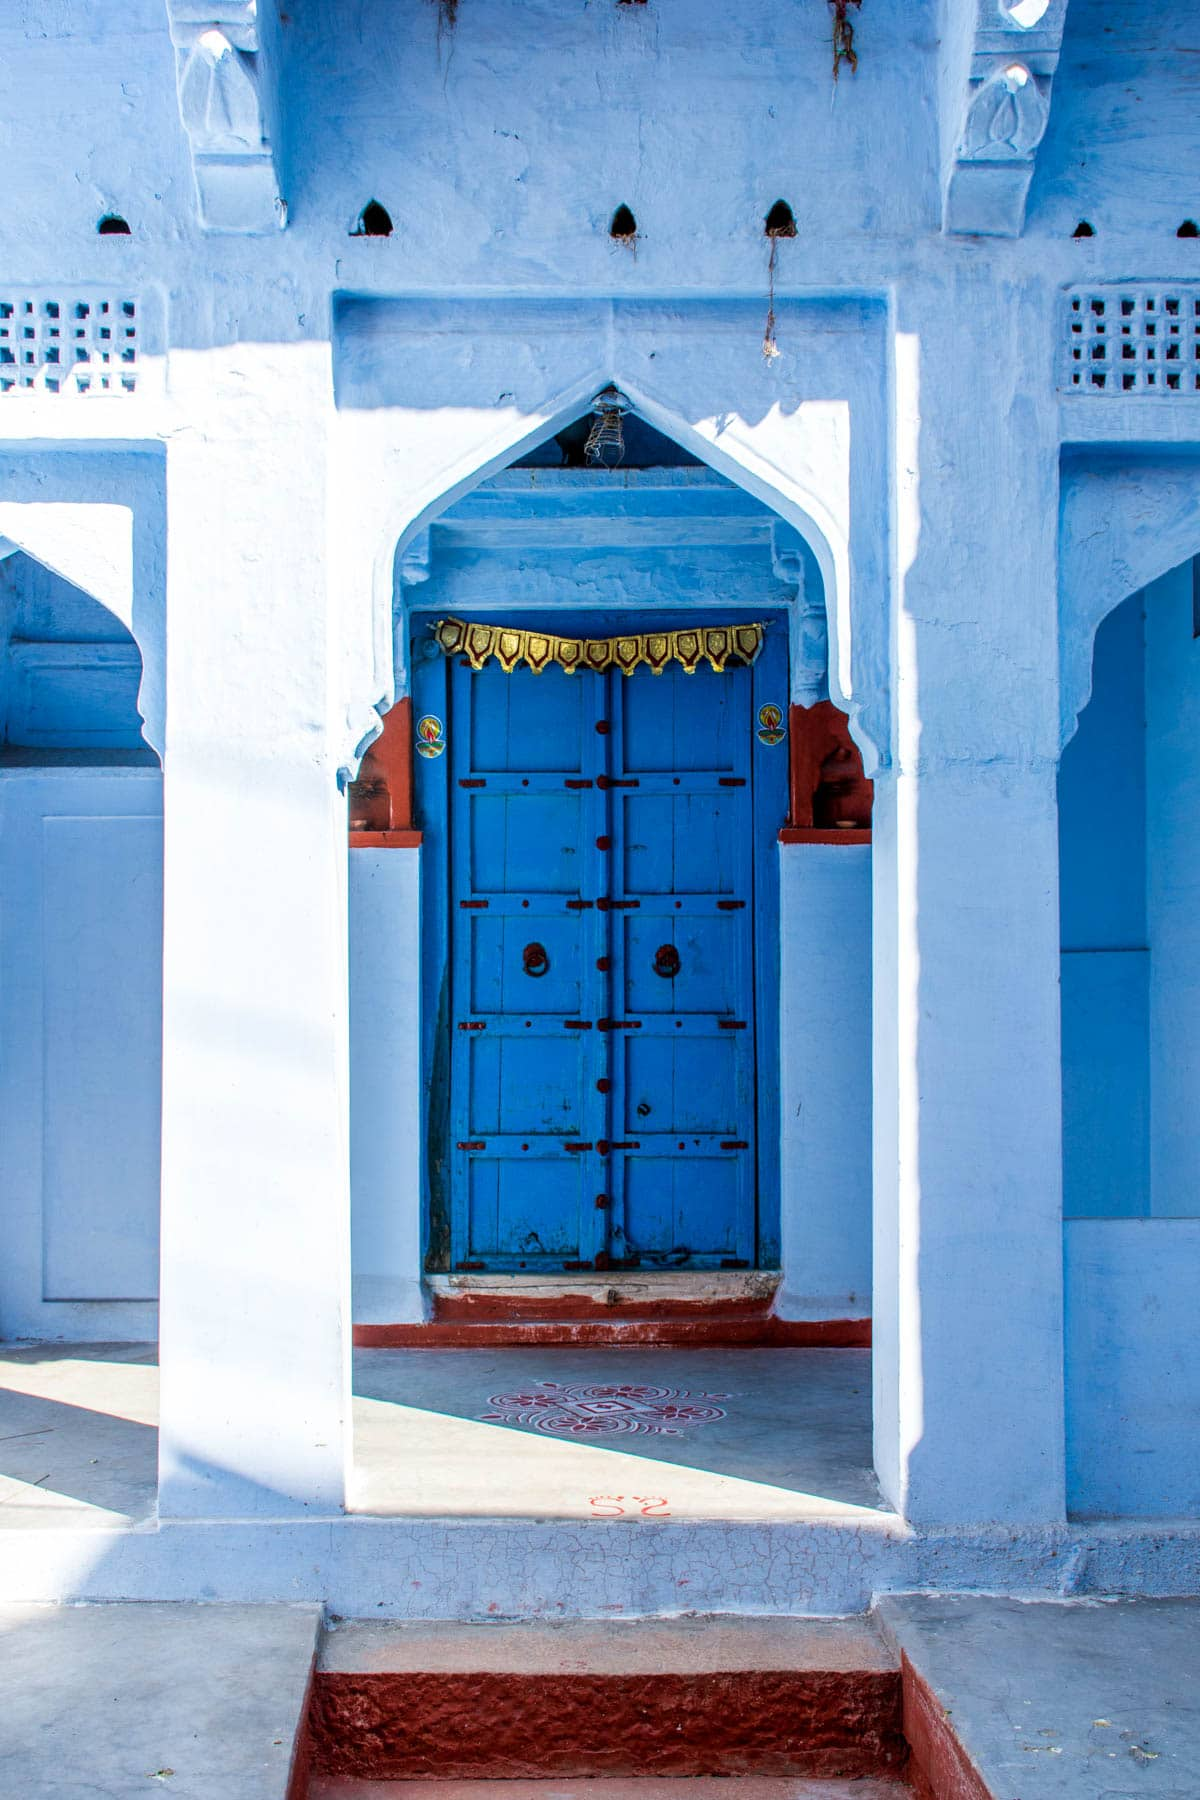 Photo essay about the streets and people of the Blue City of Jodhpur, Rajasthan, India - A blue door - Lost With Purpose